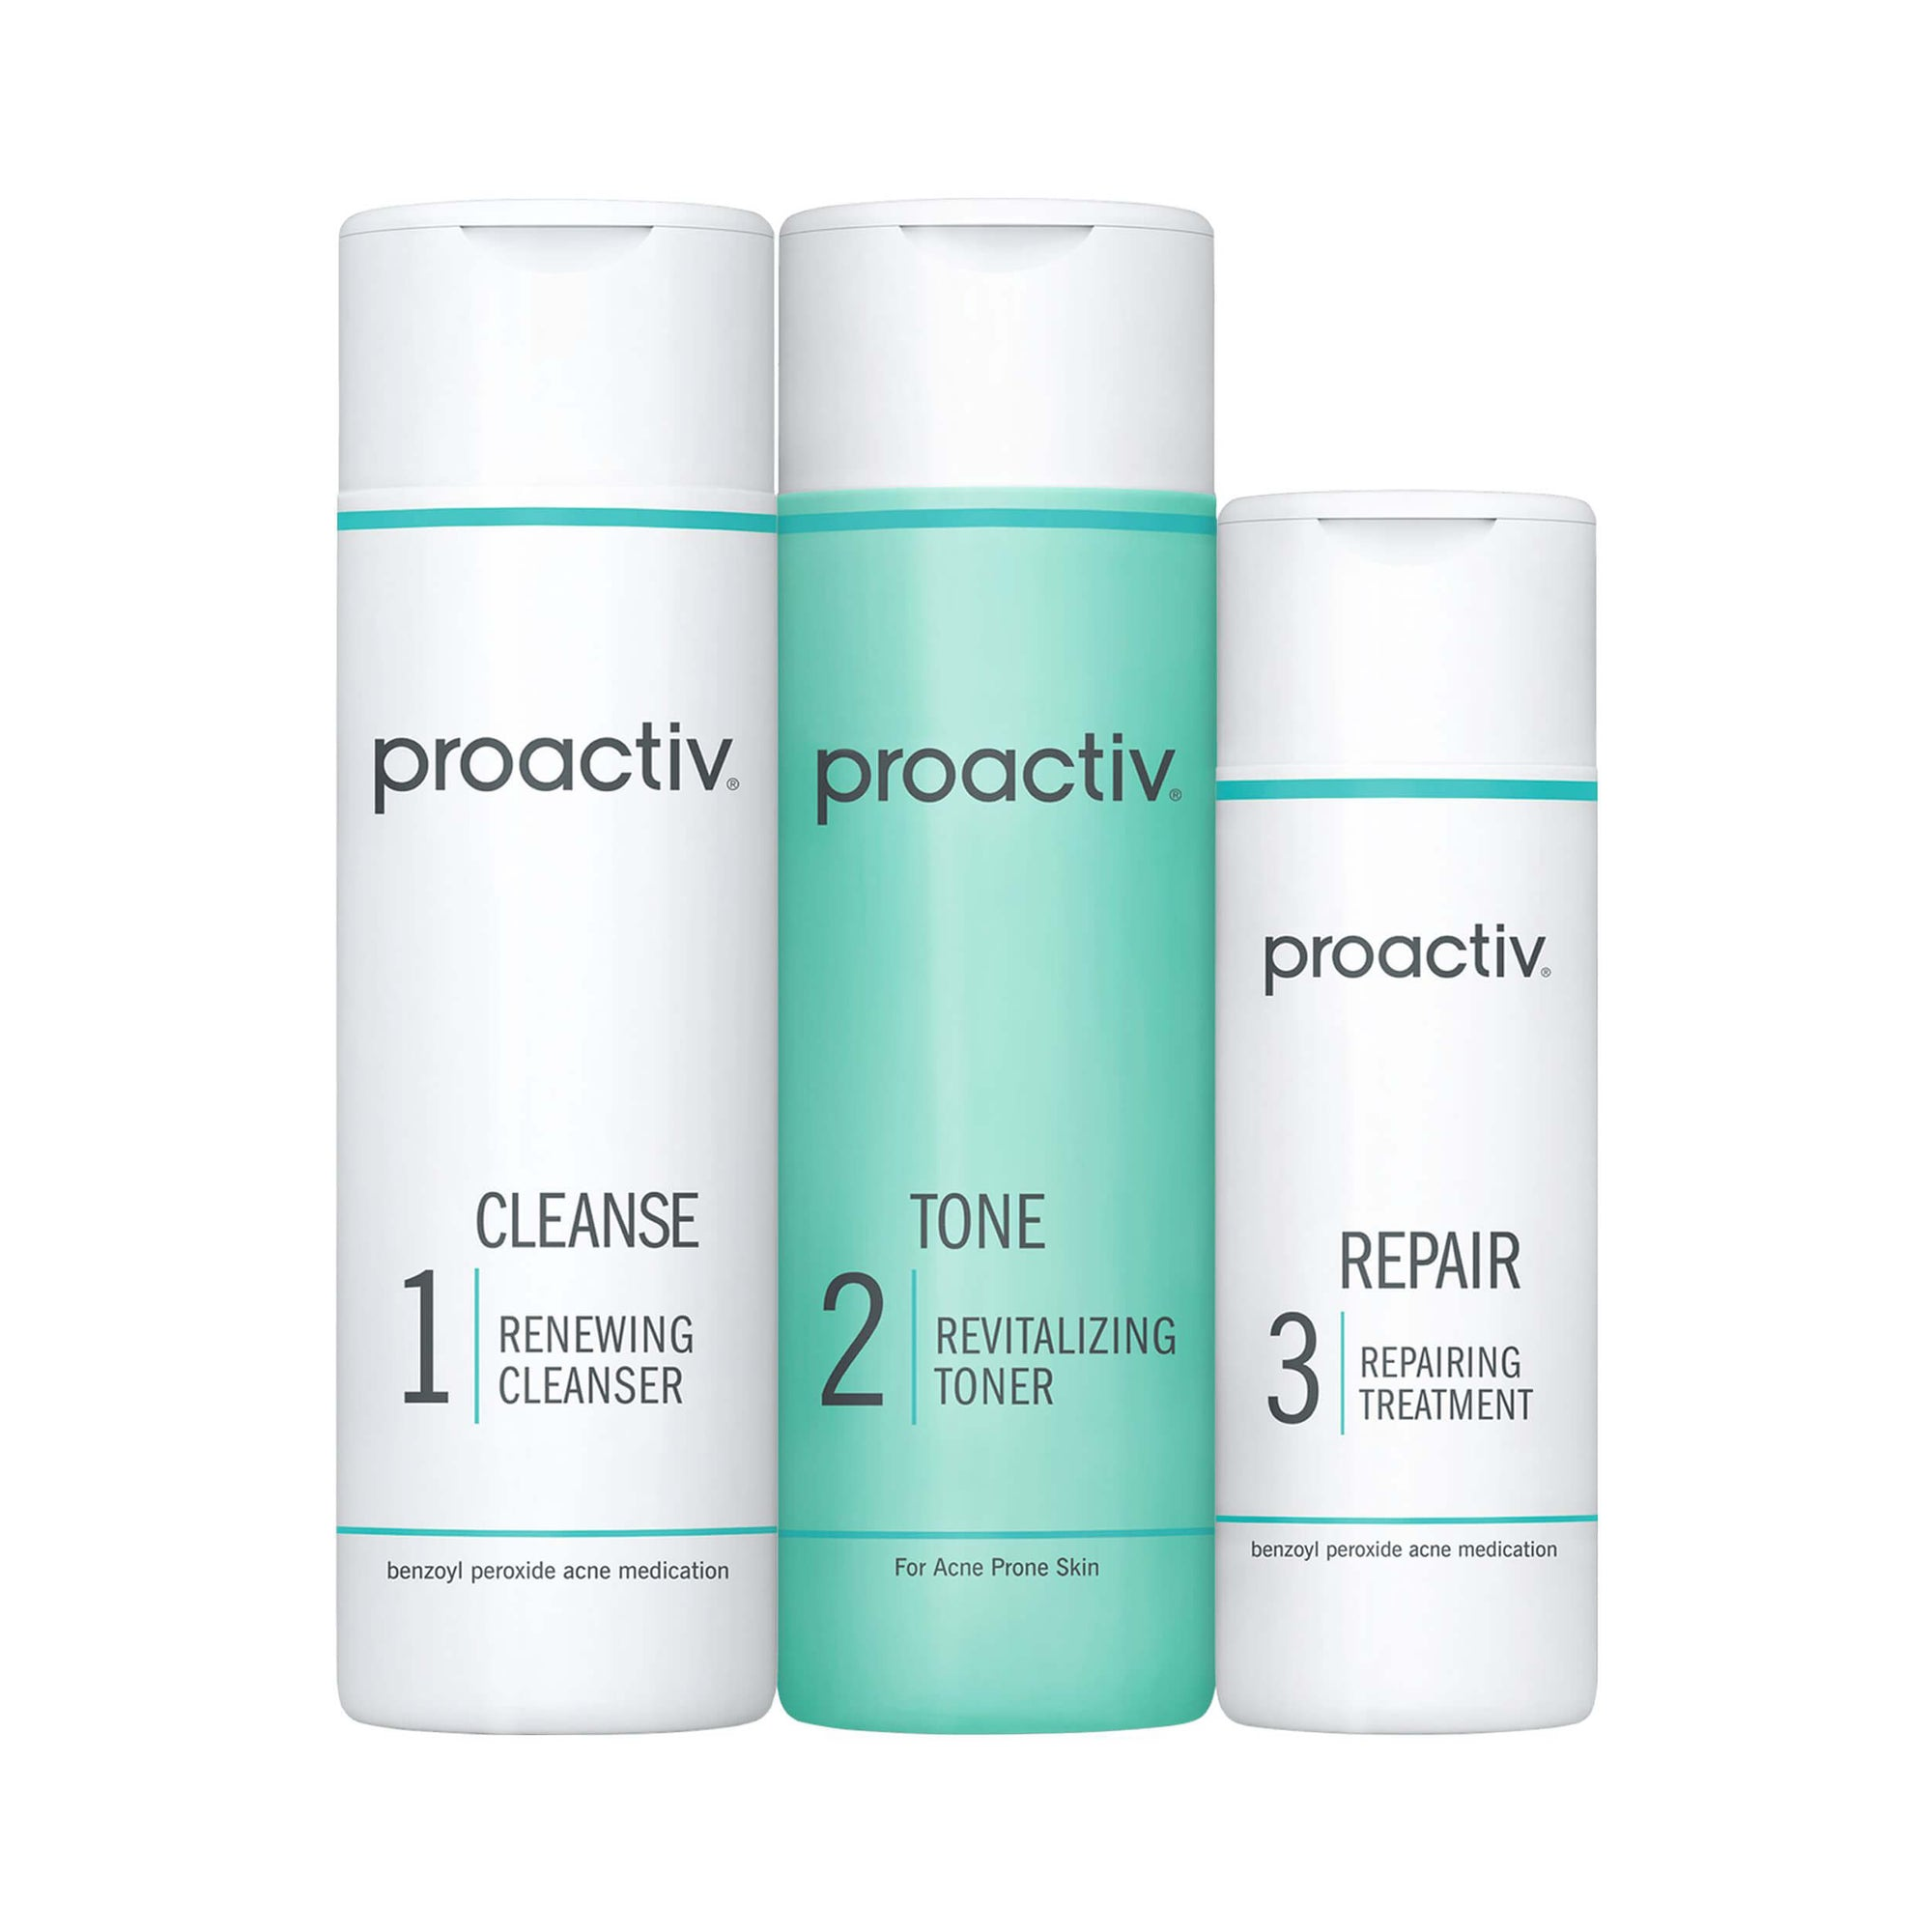 Proactiv 3 Step Kit